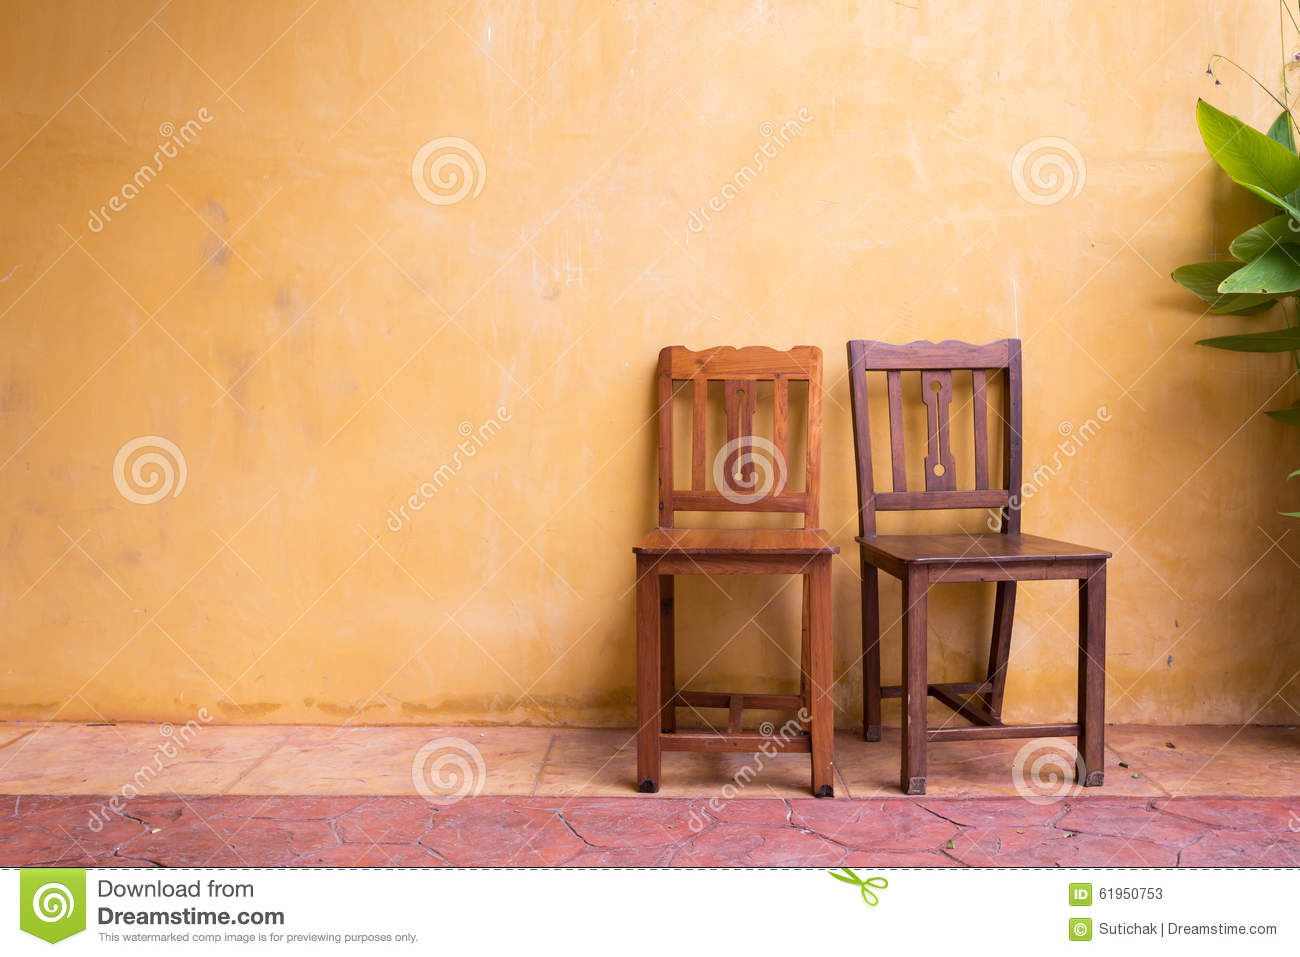 Wooden Chair And Cement Mortar Wall Background Stock Image - Image ...